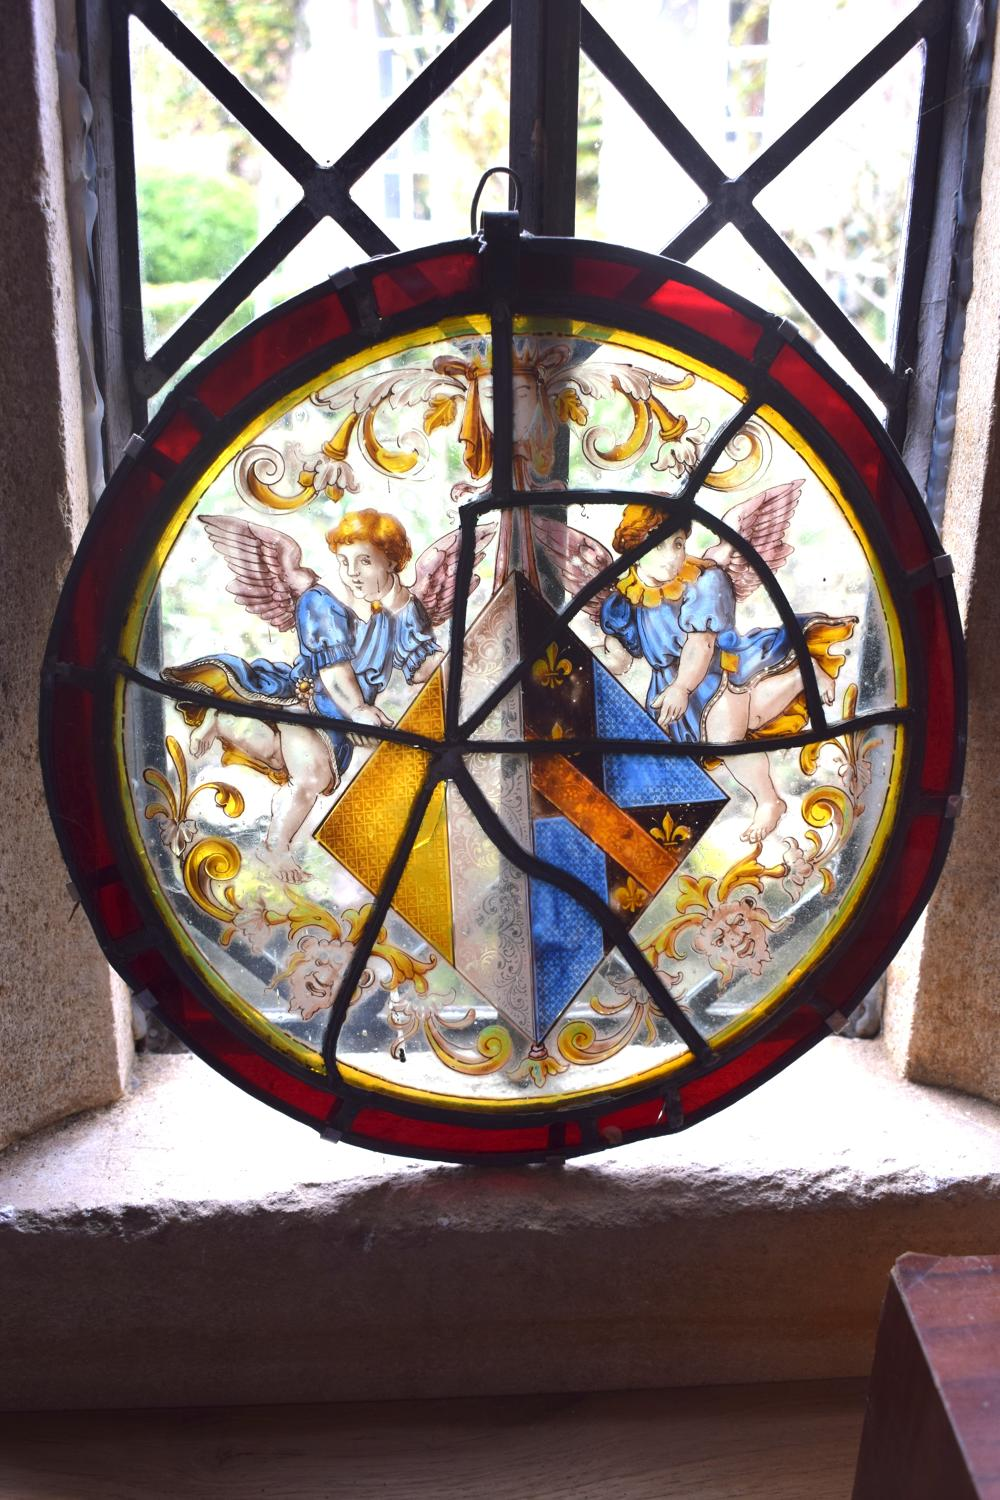 An early stained glass depicting angels